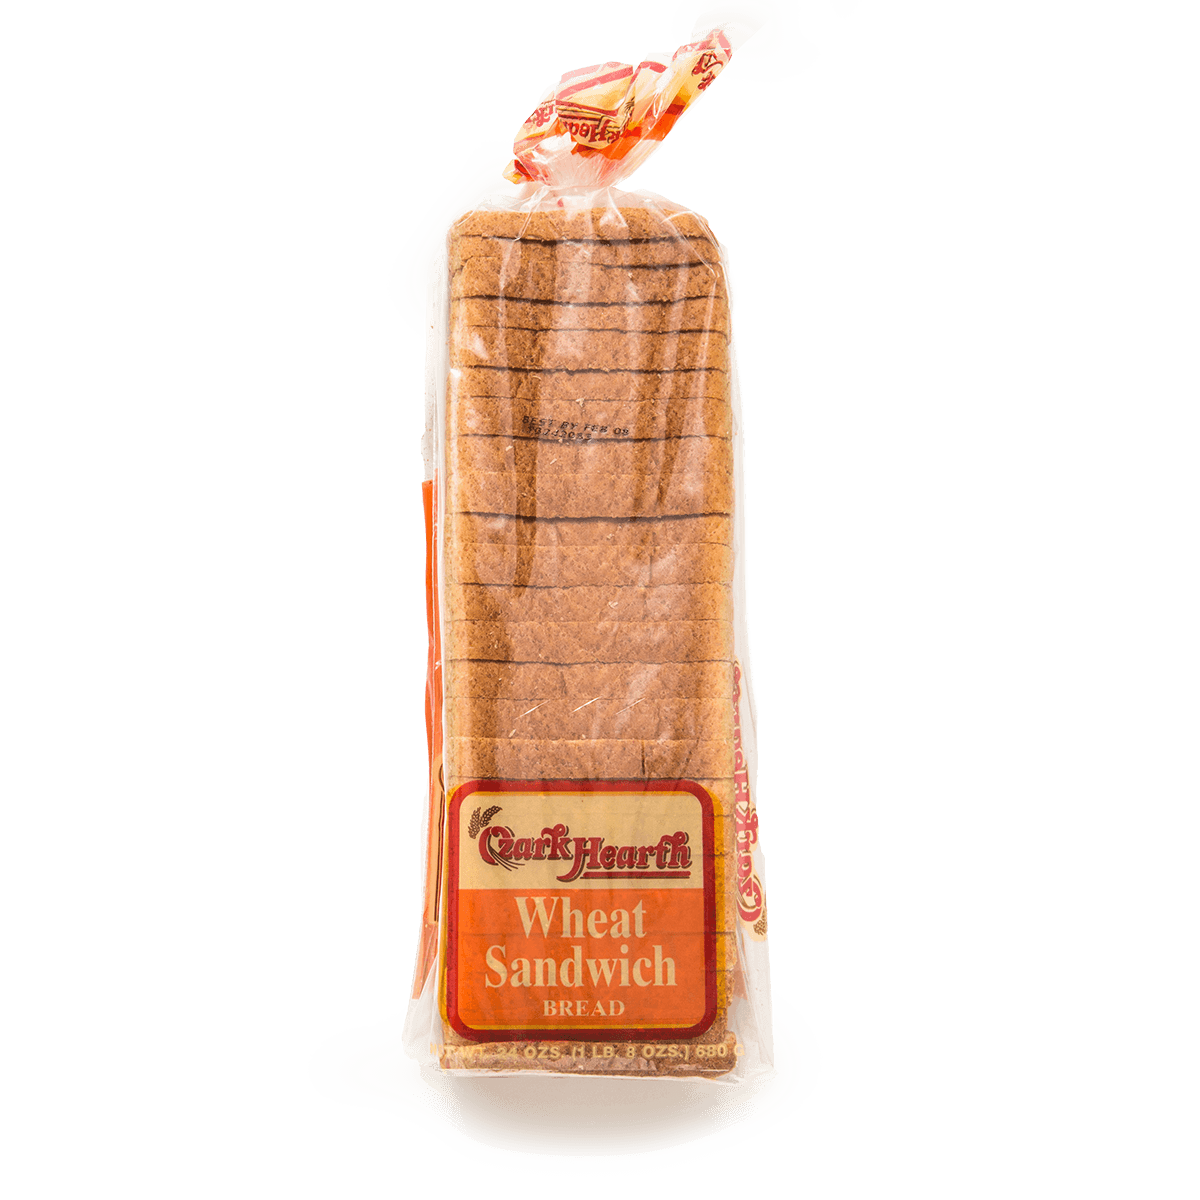 Ozark Hearth Wheat Sandwich Bread